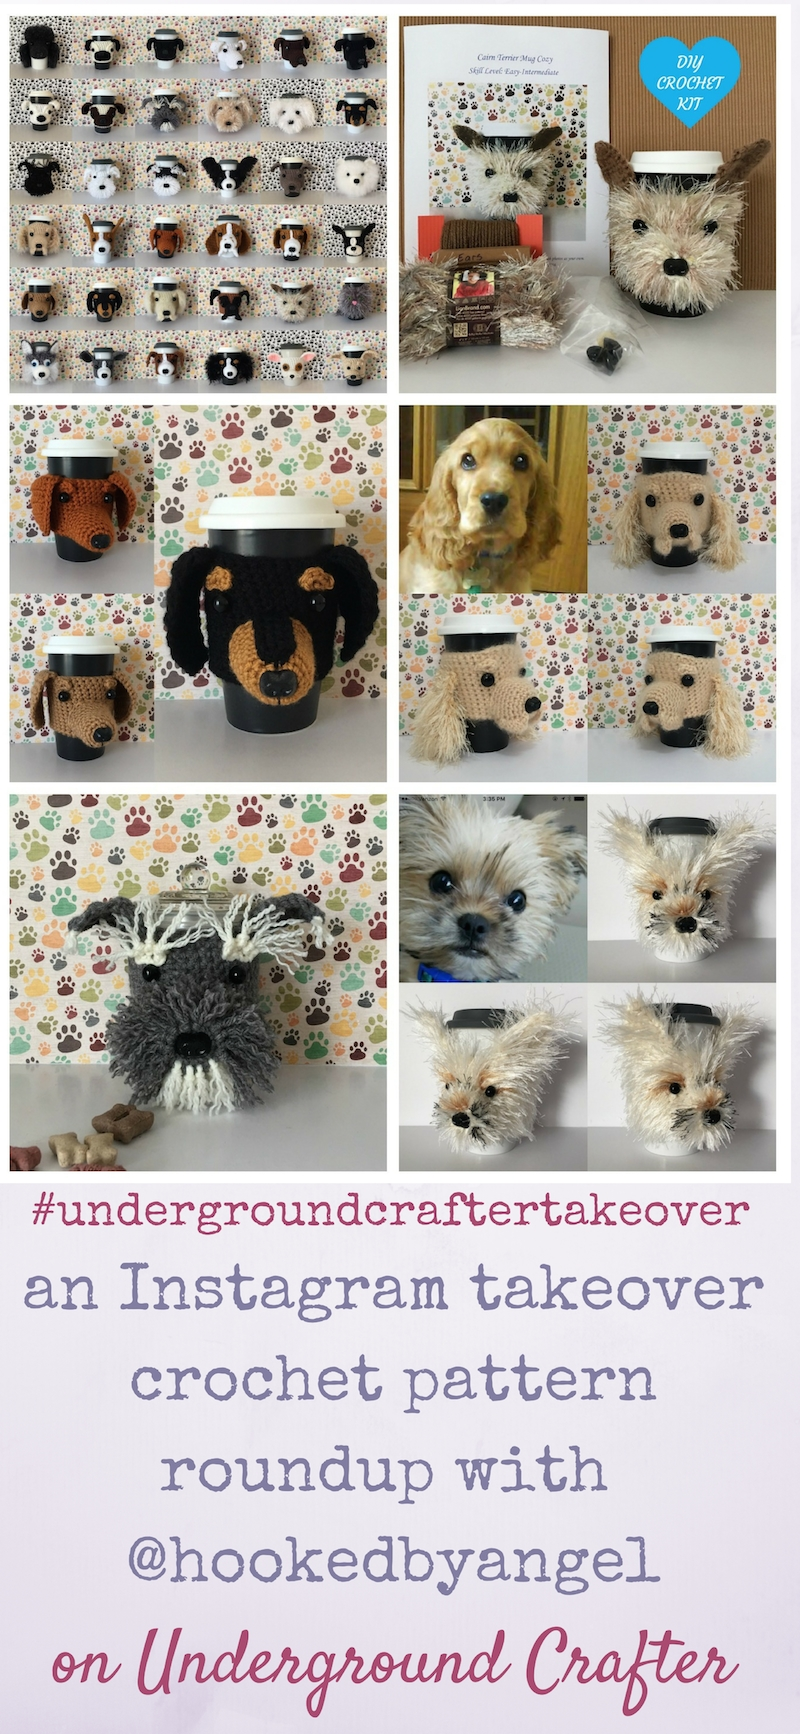 An Instagram takeover crochet pattern roundup featuring adorable dog cozy patterns by HookedByAngel on Underground Crafter